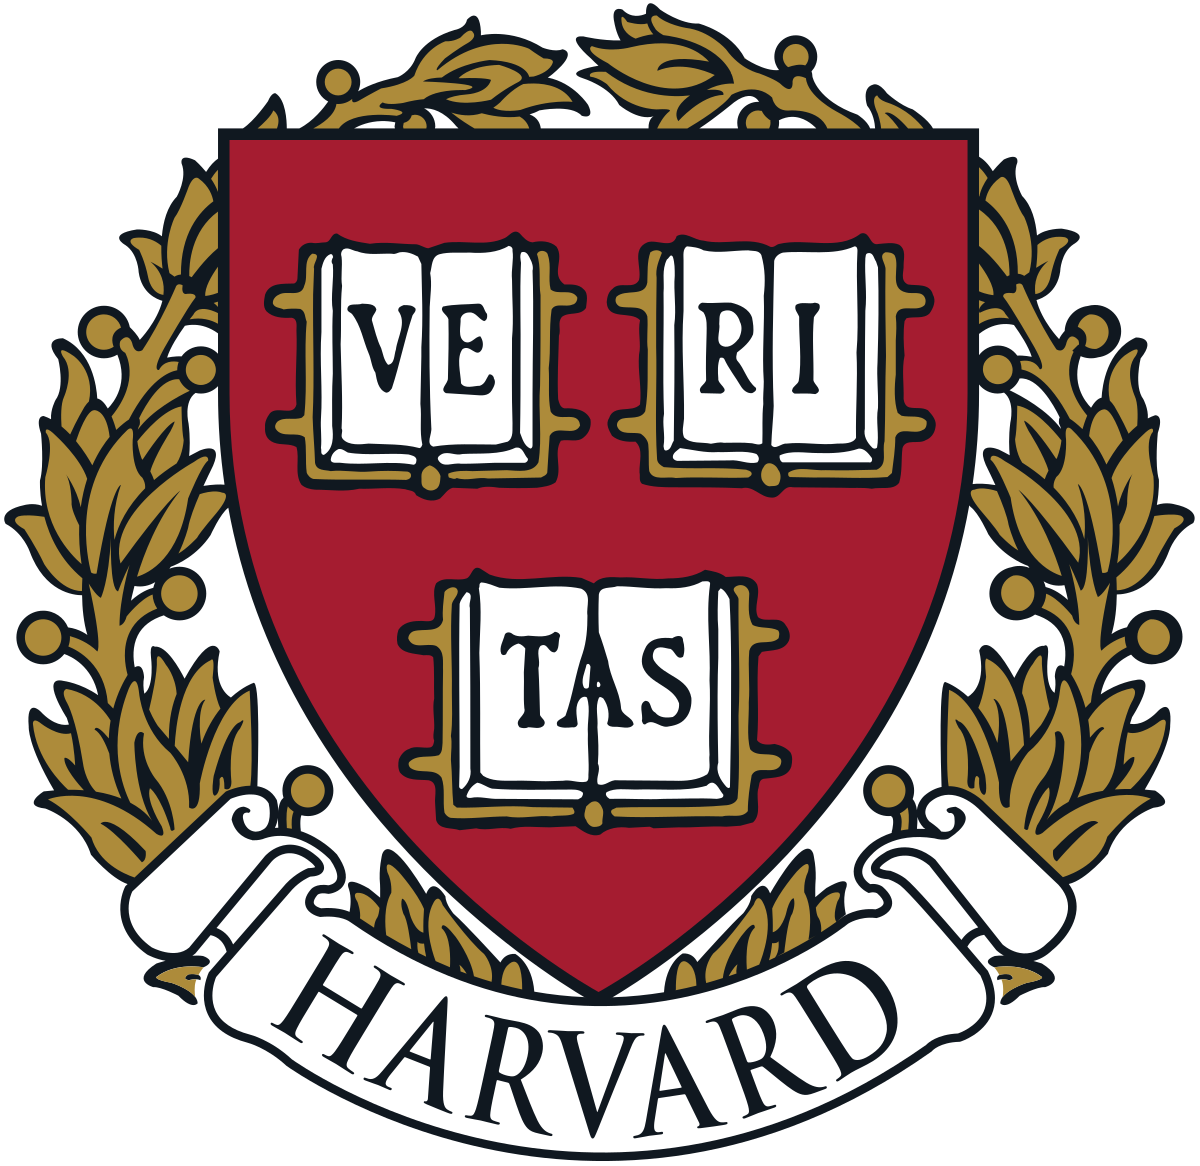 Harvard university online course on Shakespeare's Life